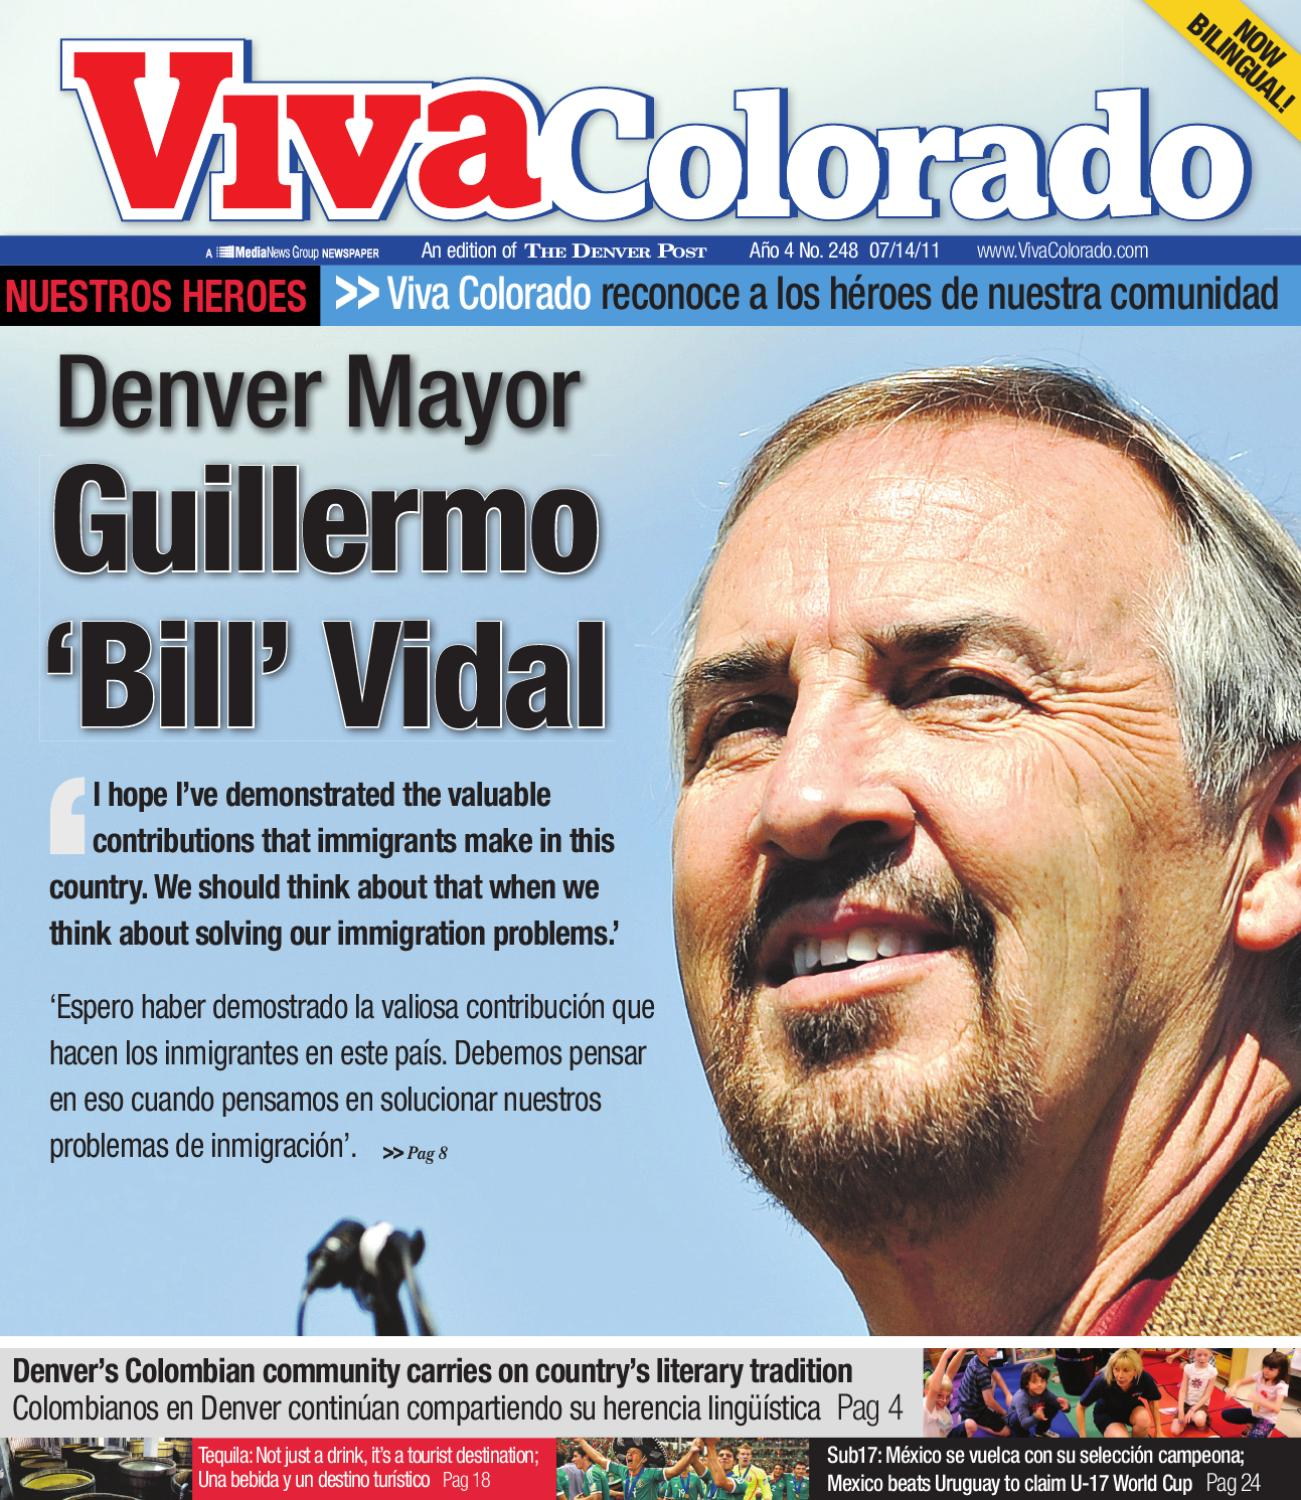 Denver Mayor Guillermo 'Bill' Vidal By Viva Colorado